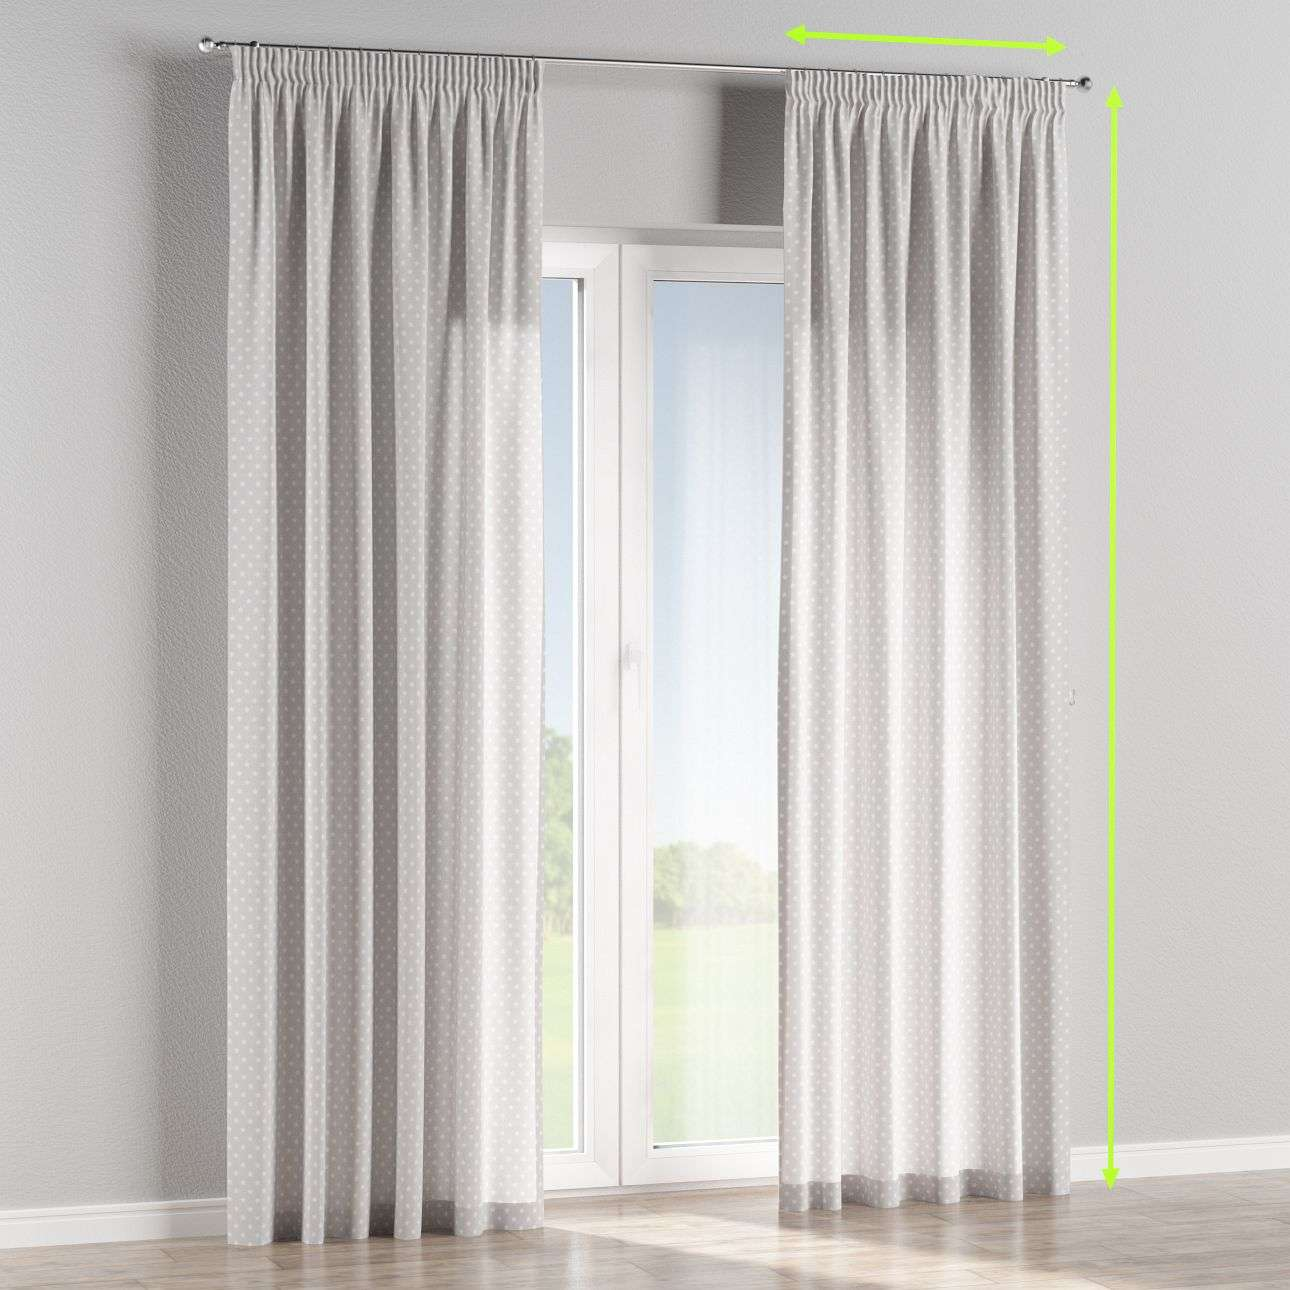 Pencil pleat curtains in collection Ashley, fabric: 137-67